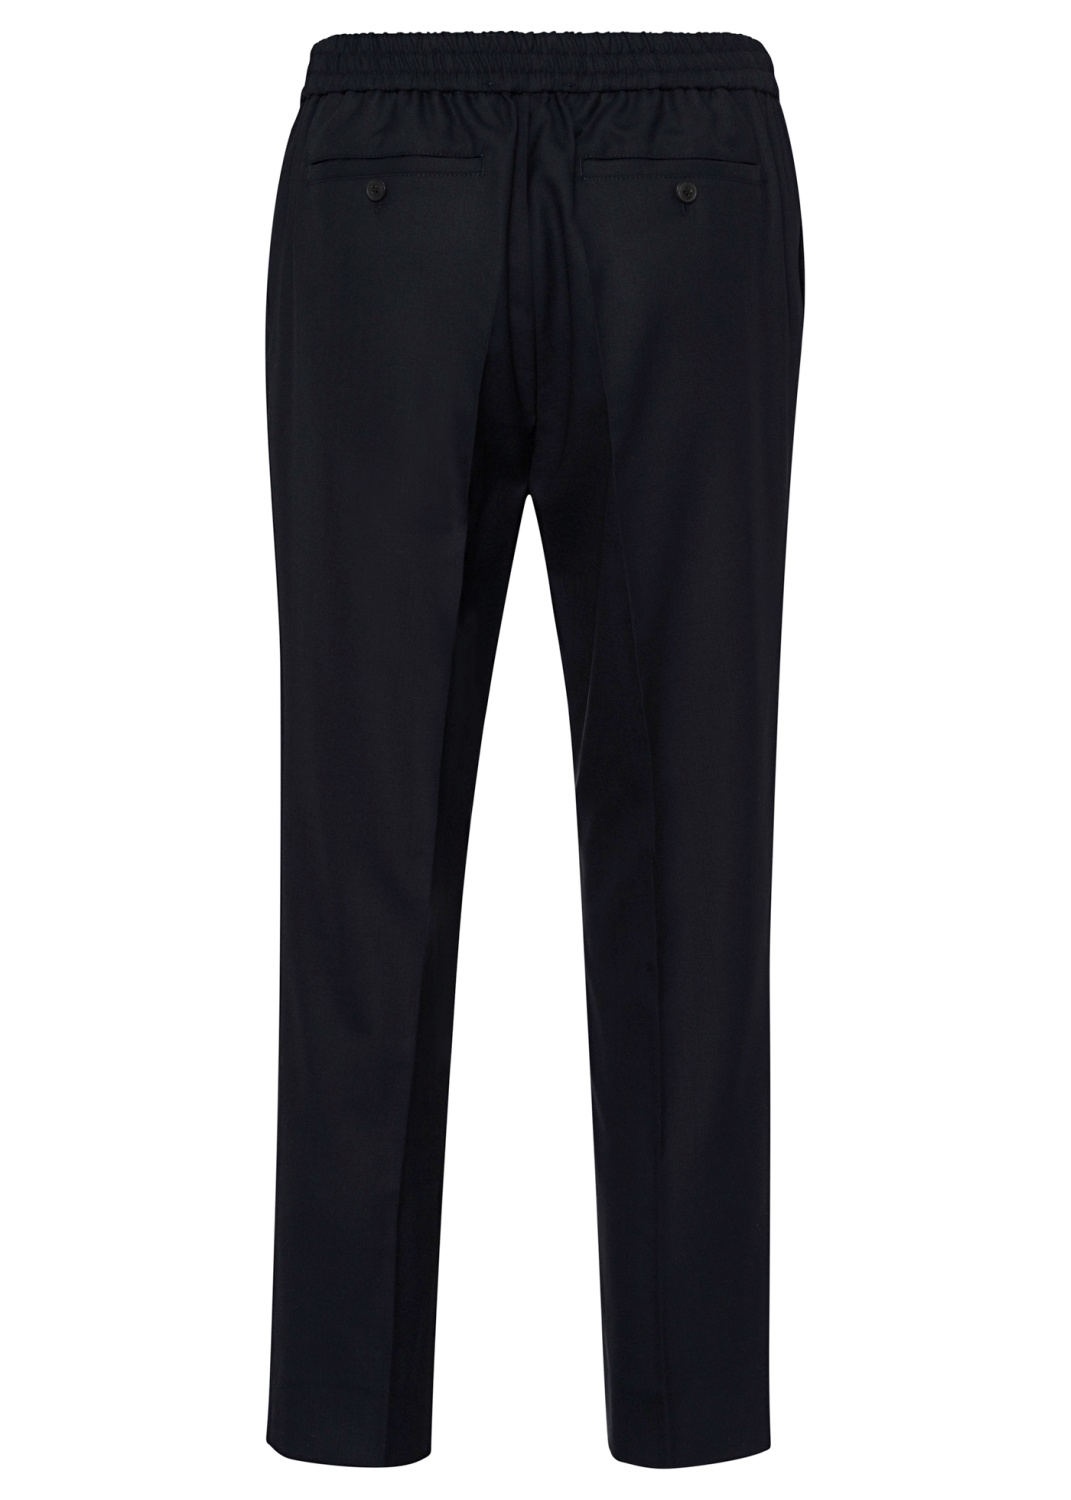 ELASTICIZED WAIST CROPPD FIT TROUSERS image number 1